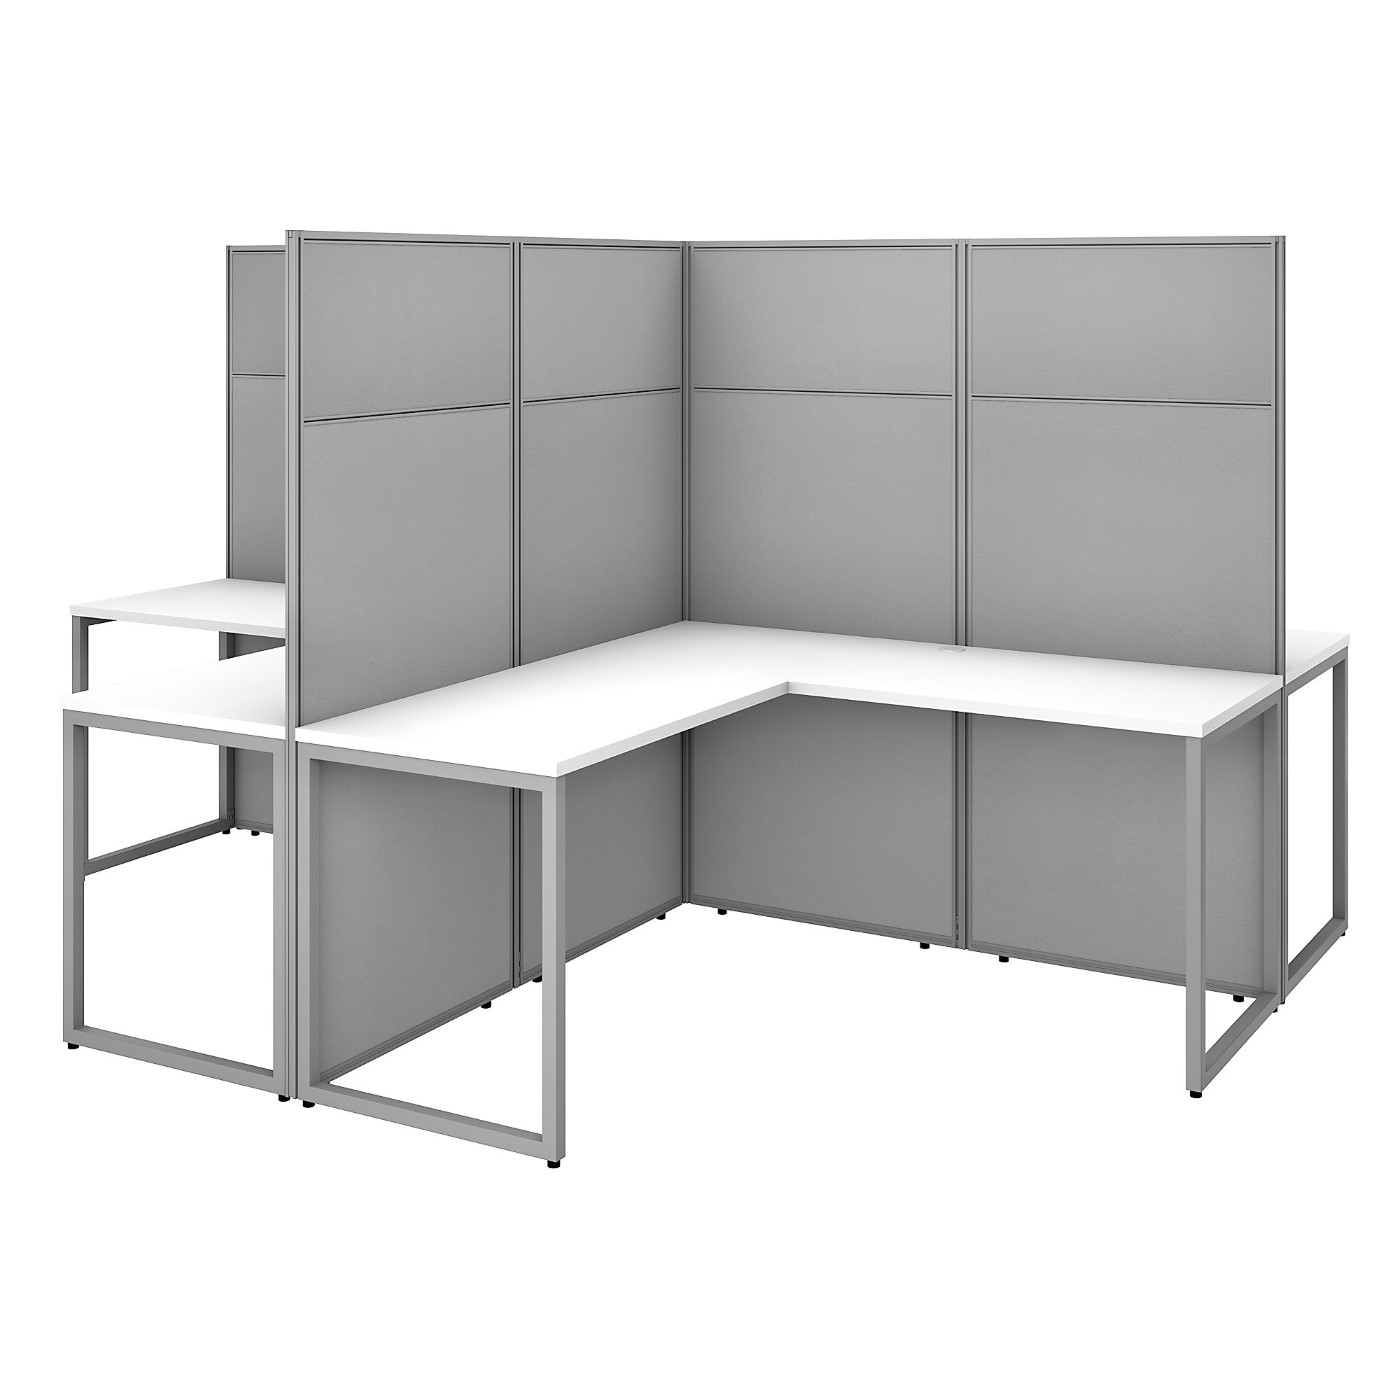 BUSH BUSINESS FURNITURE EASY OFFICE 60W 4 PERSON L SHAPED CUBICLE DESK WORKSTATION WITH 66H PANELS. FREE SHIPPING